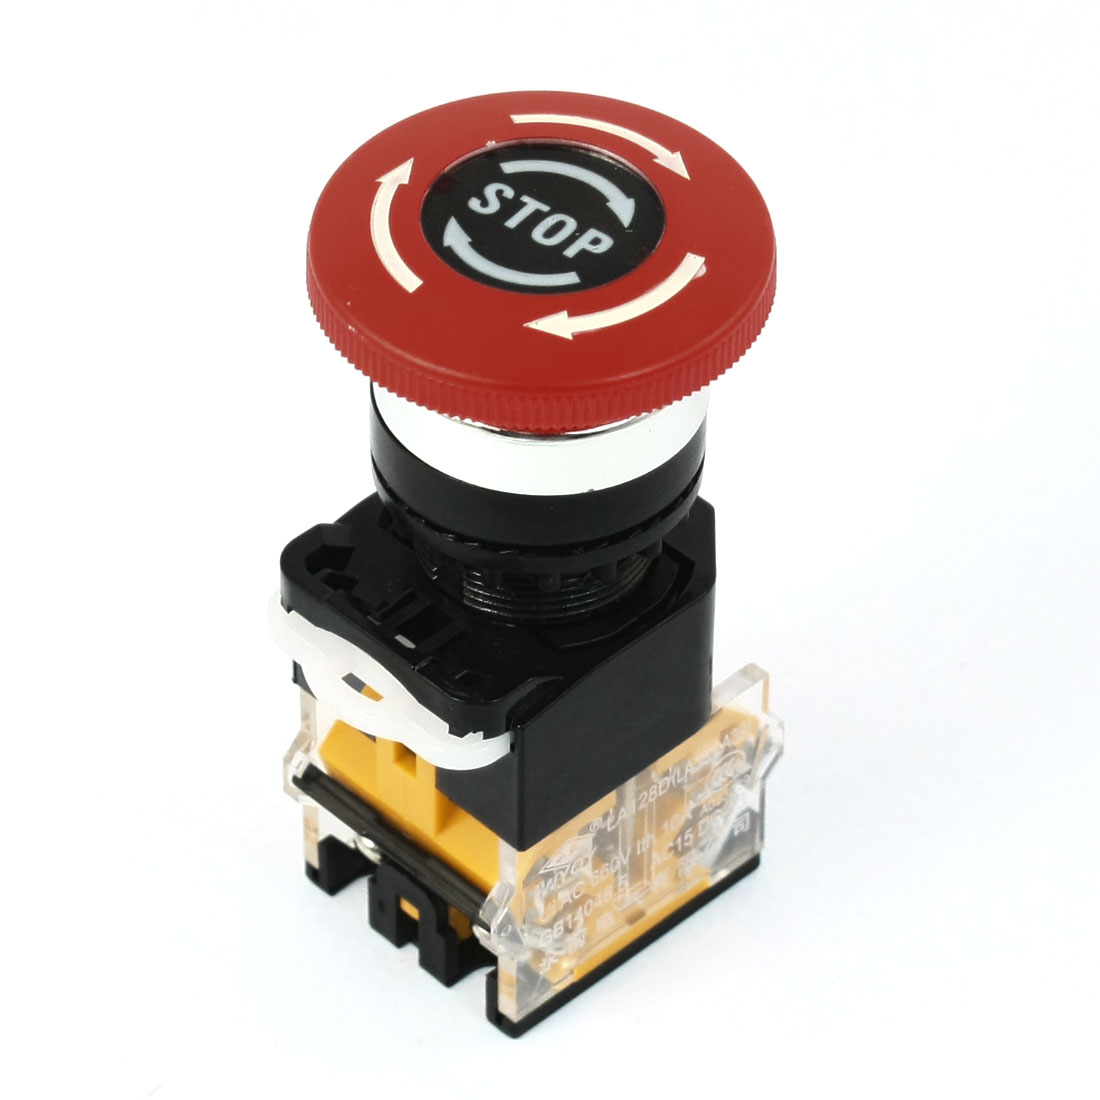 Ui 660V Ith 10A 21mm Thread Panel Mounting DPST Latching Rotary Reset Red Mushroom Head Push Button Switch